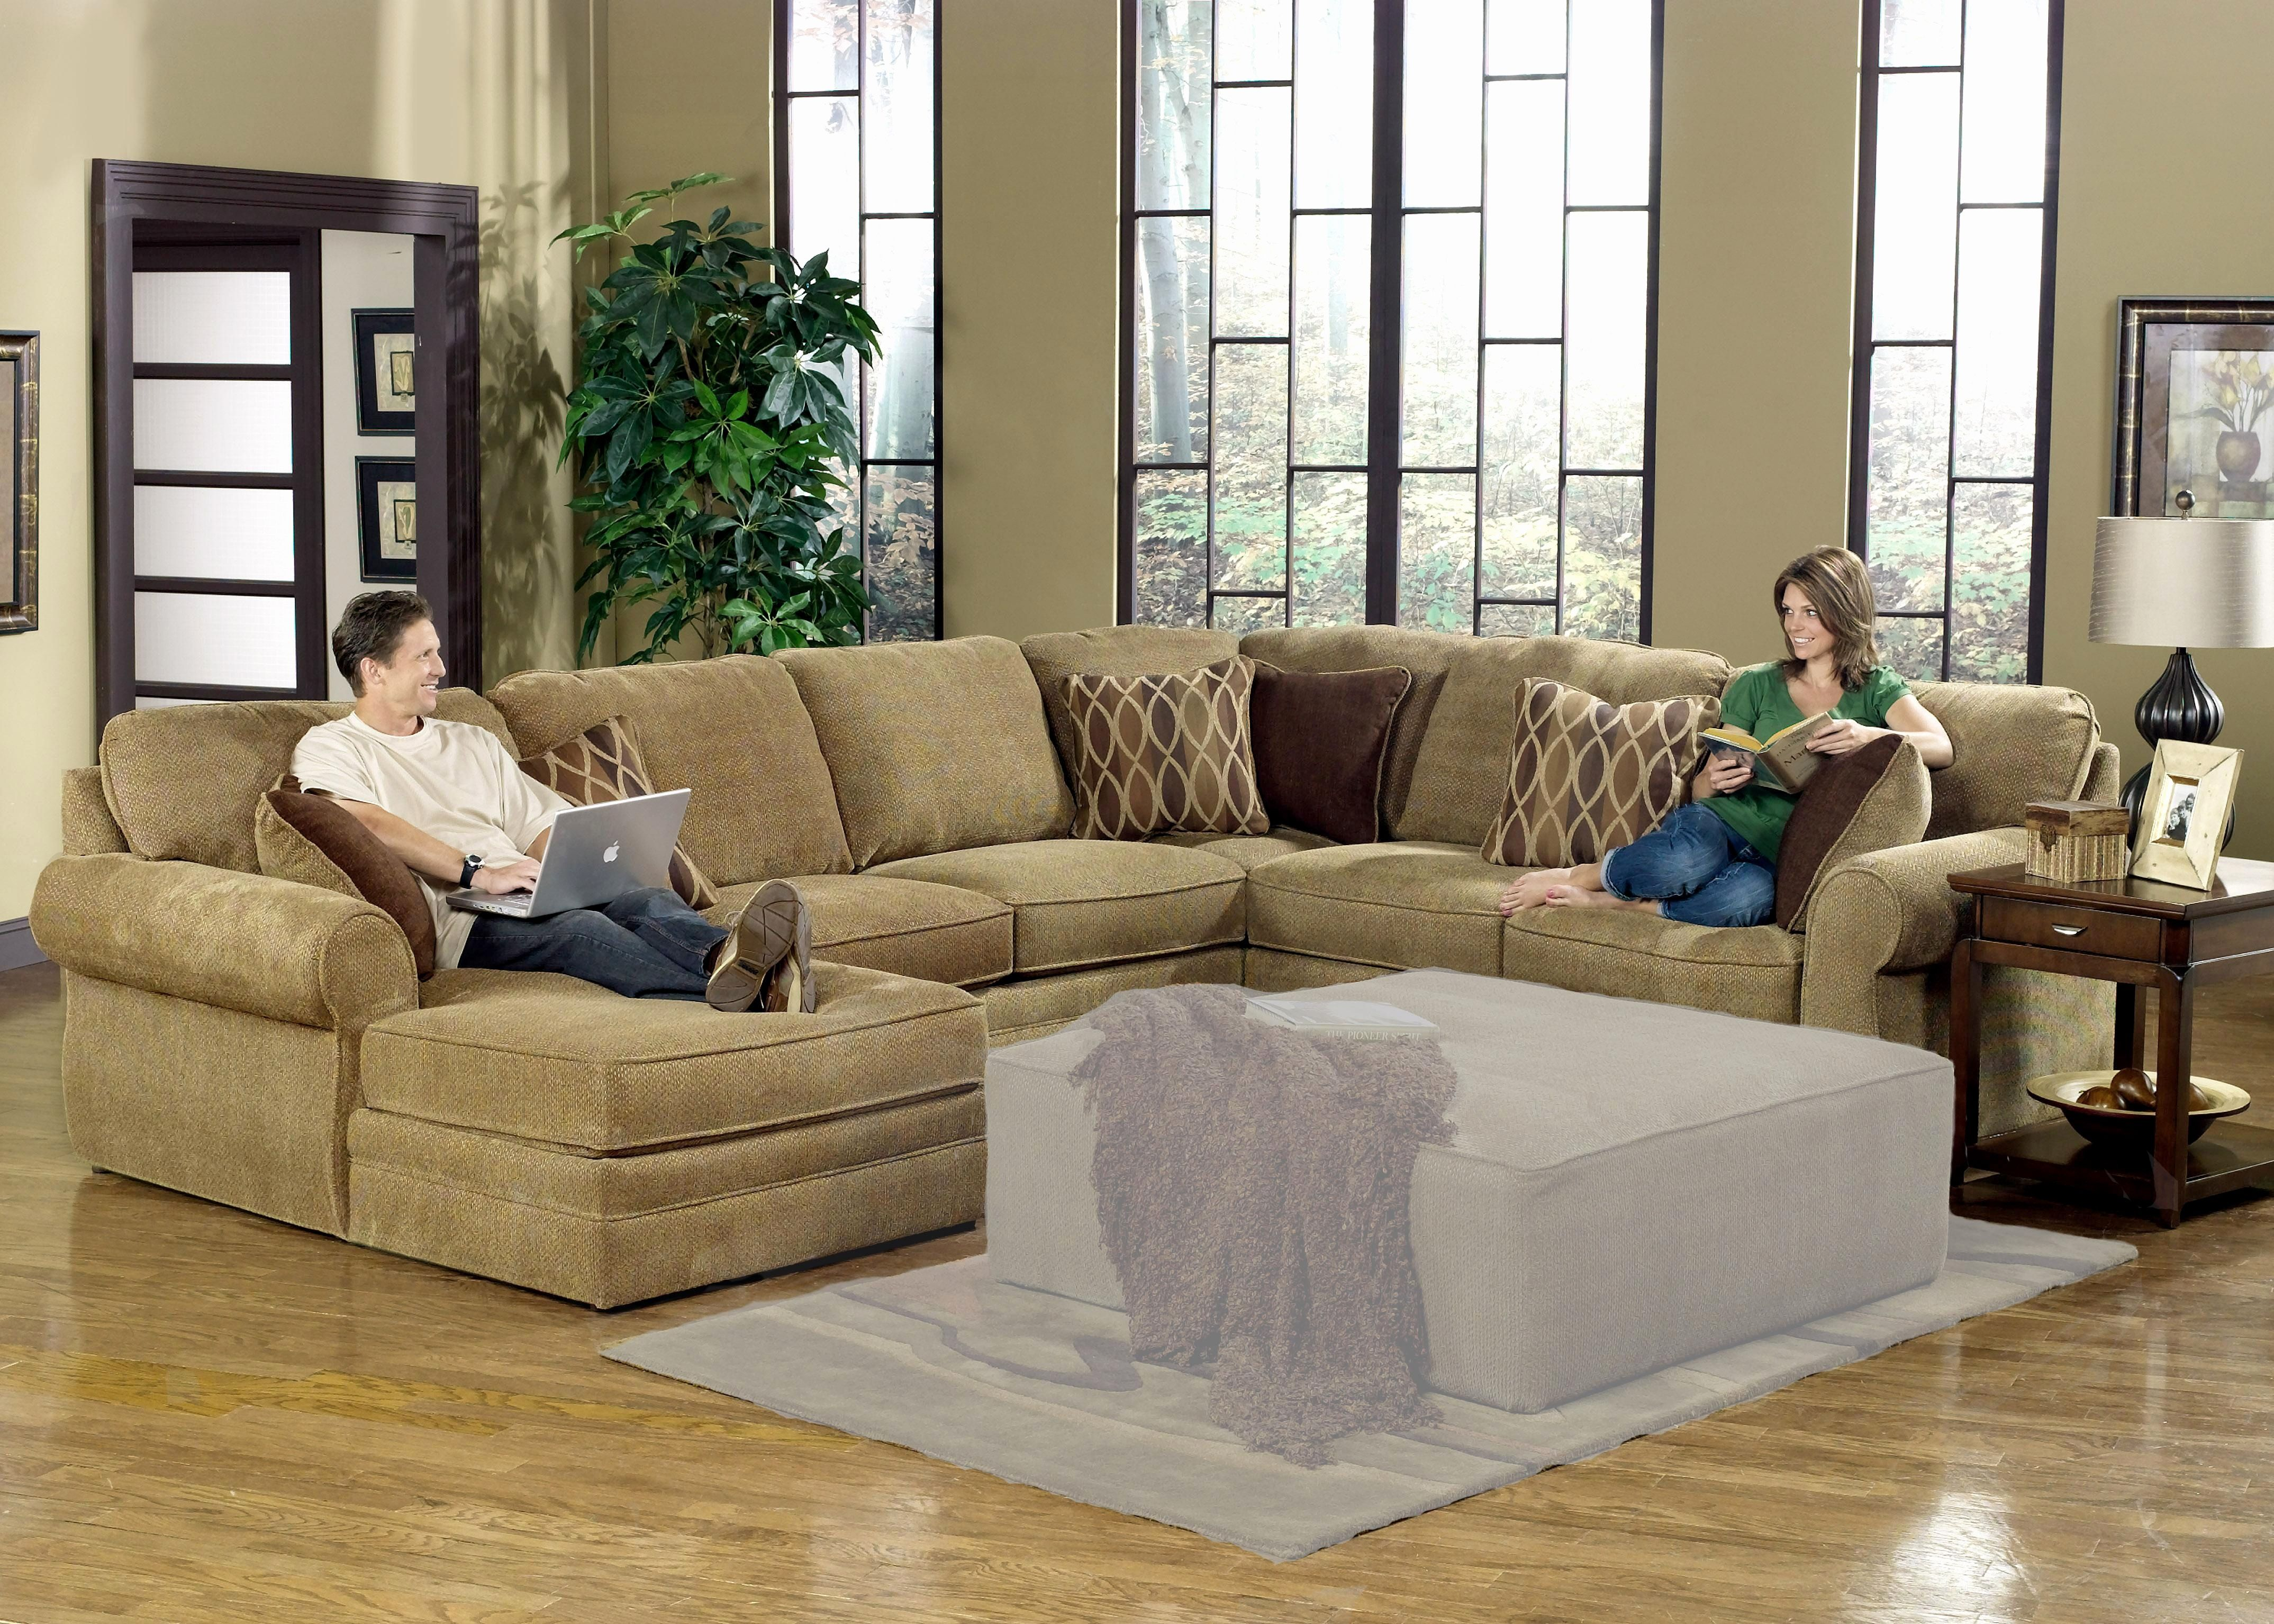 Merveilleux Lovely Chenille Sectional Sofa Graphics Chenille Sectional Sofa New Trenton Sectional  Sofa By Homelegance Tan Chenille